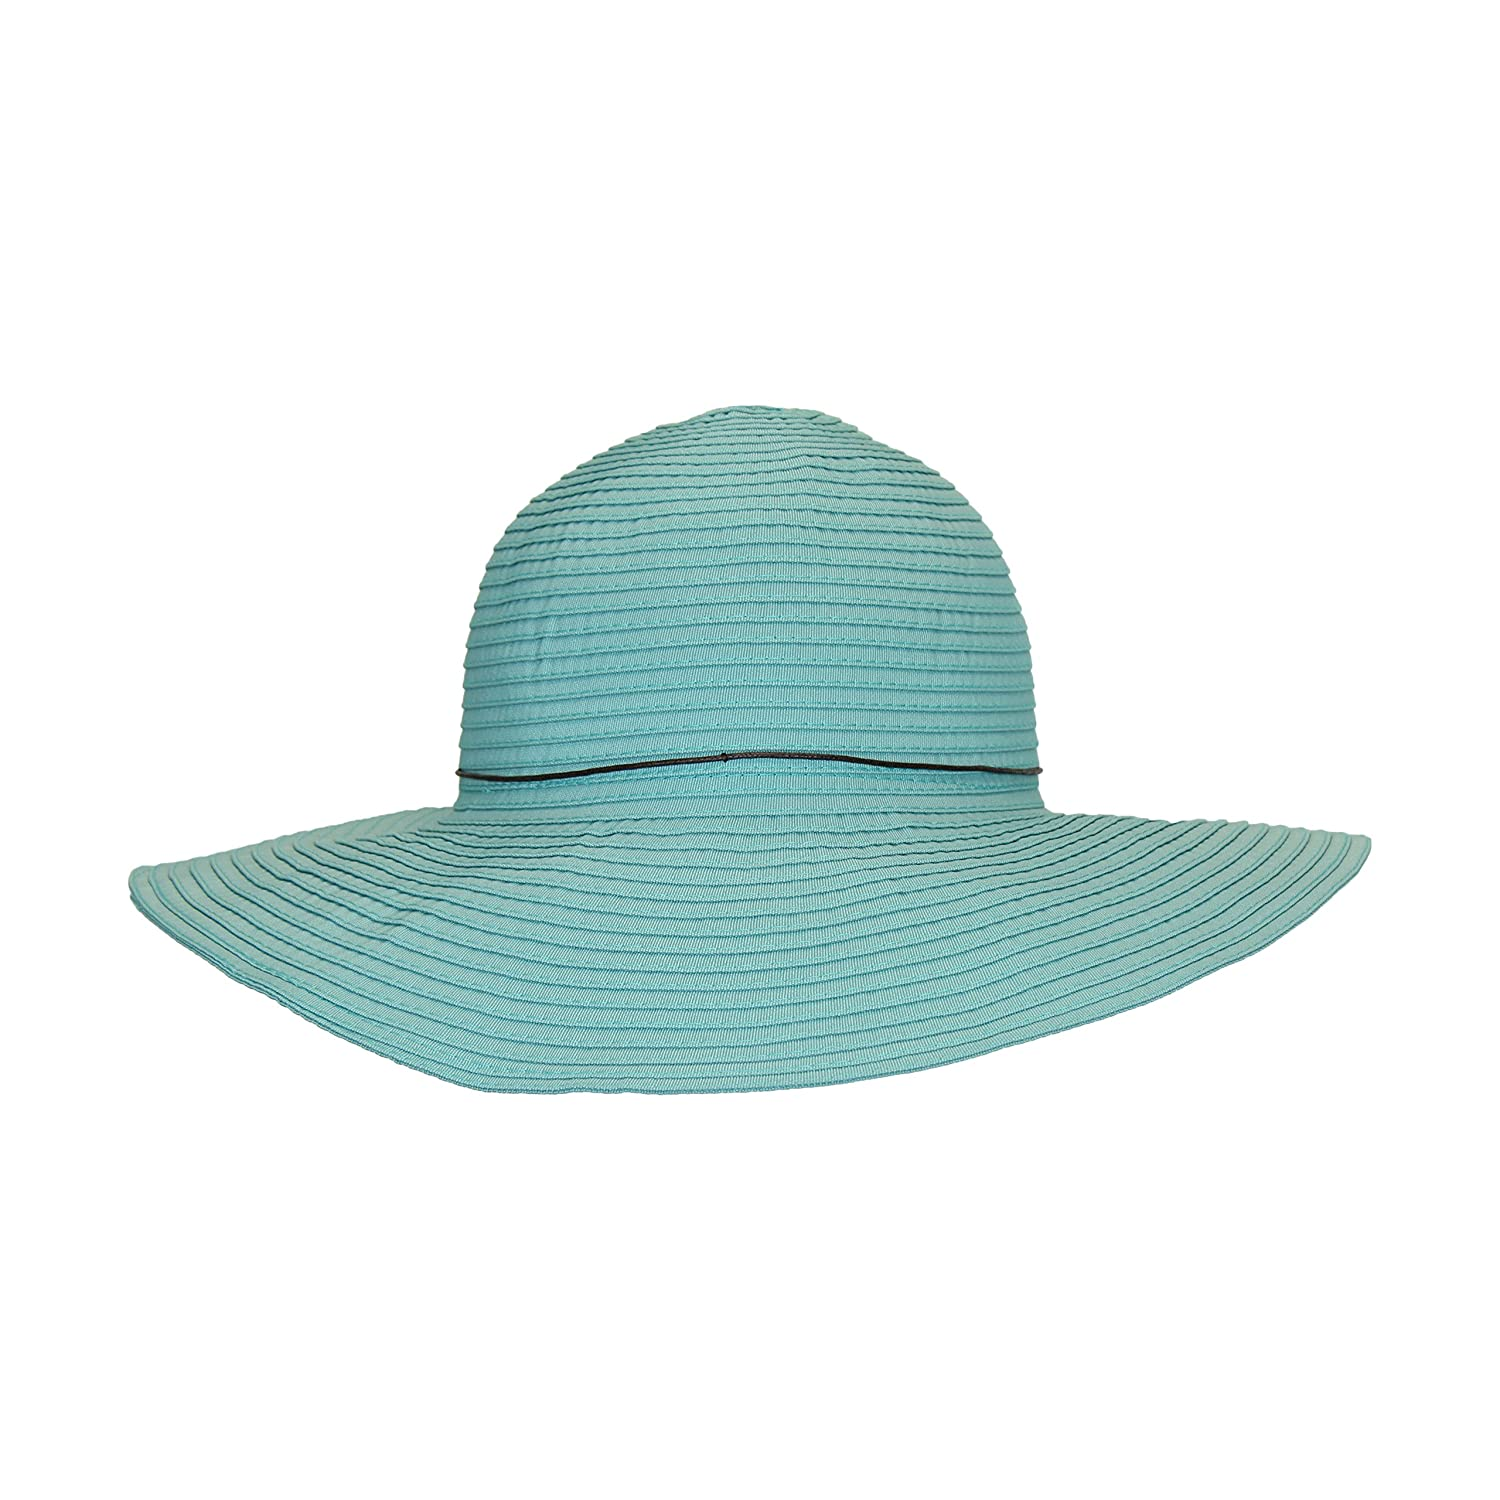 0eaa07d9411 Aqua Light Turquoise Teal Ribbon Crusher Sun Hat, 4 in. Shapeable Brim, SPF  UPF 50 UV, One Size at Amazon Women's Clothing store: